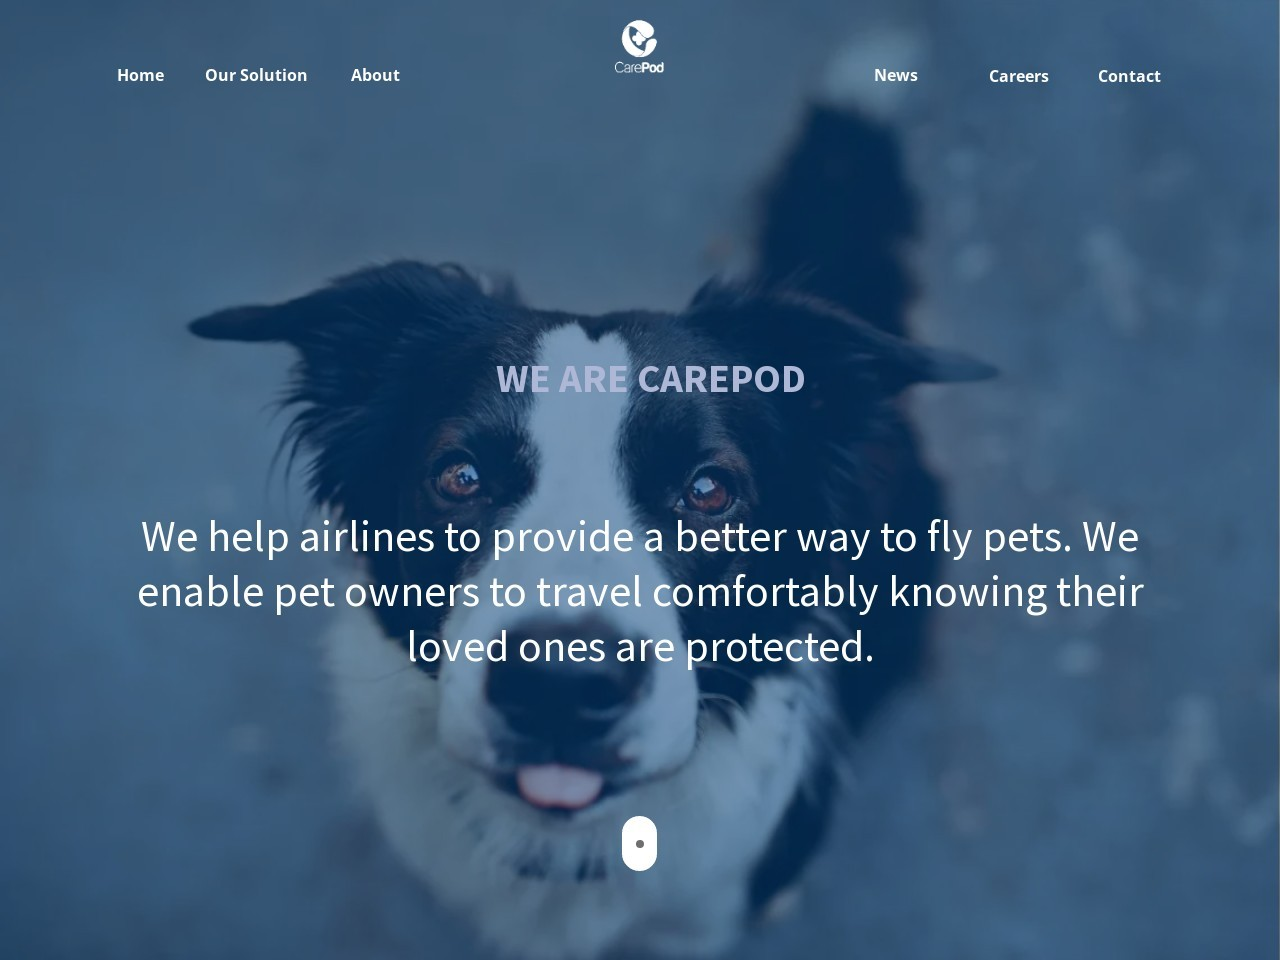 https://care-pod.com